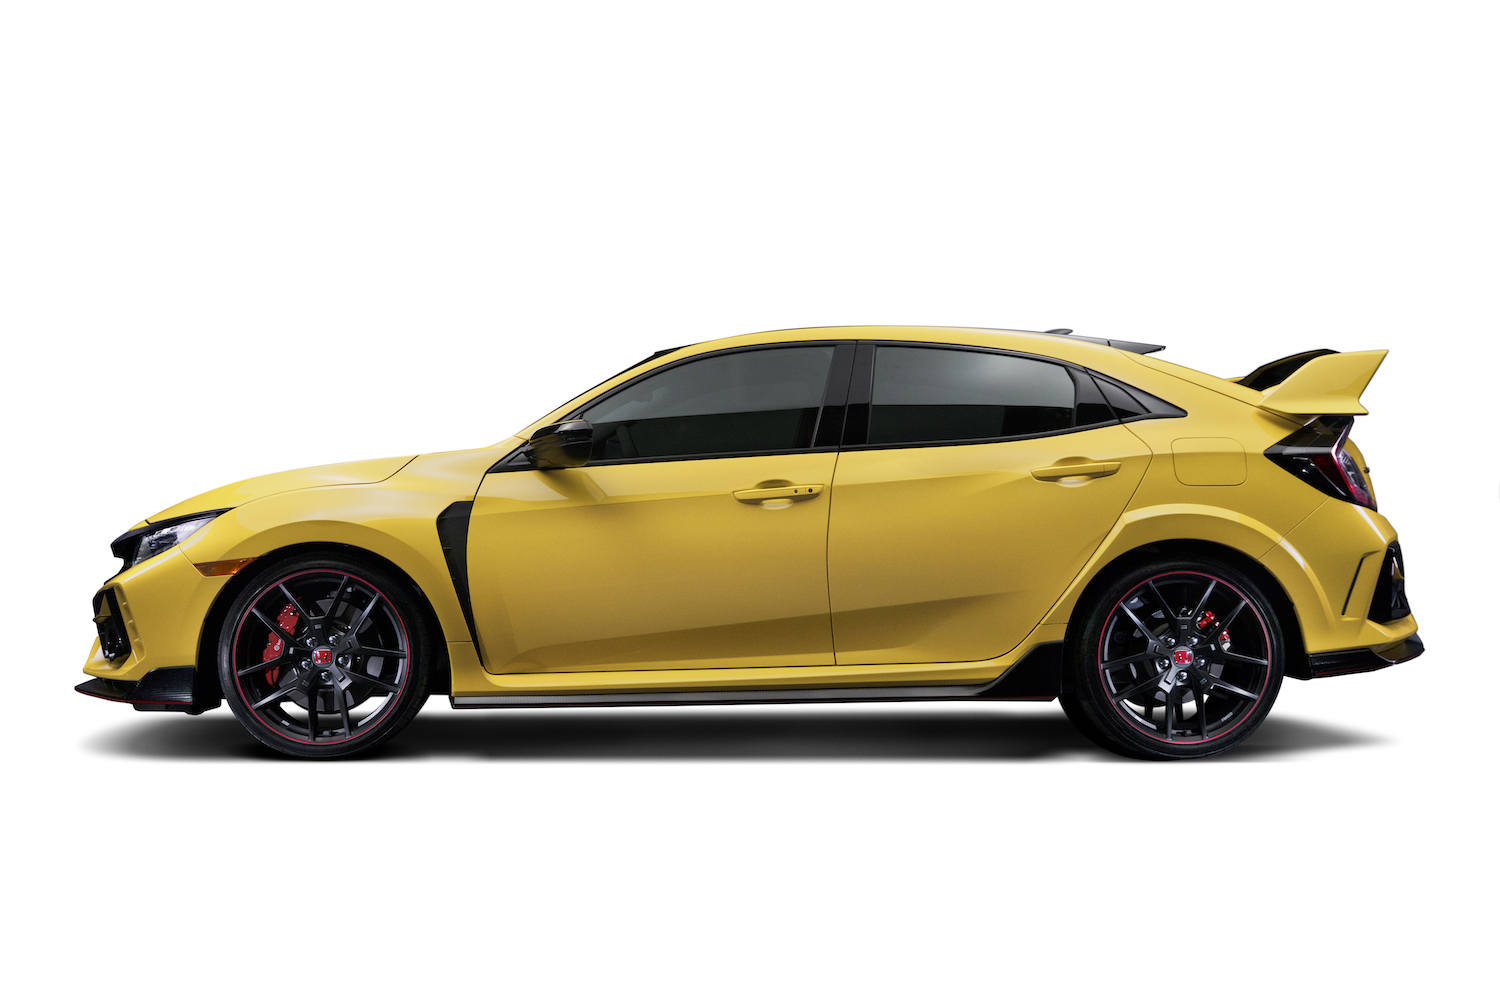 2021 Civic Type R Limited Edition side-view